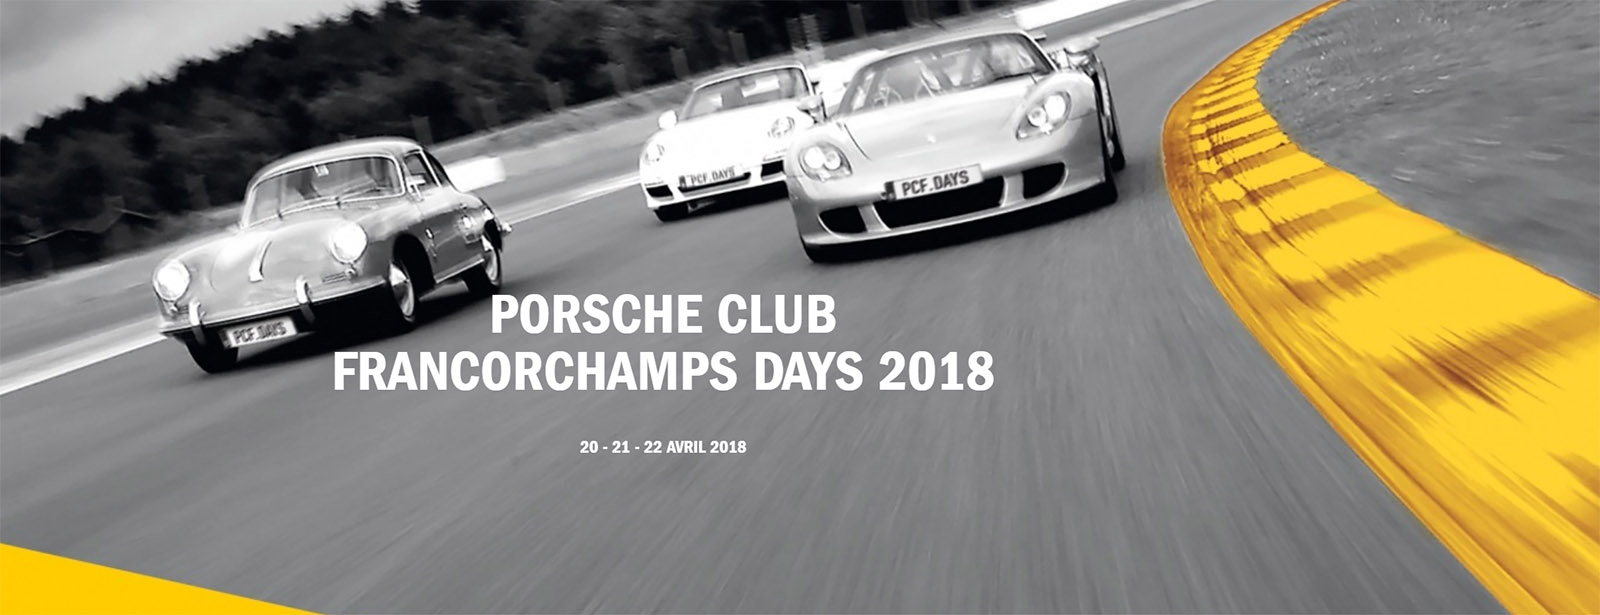 Couverture Les Porsche Club Francorchamps Days 2018